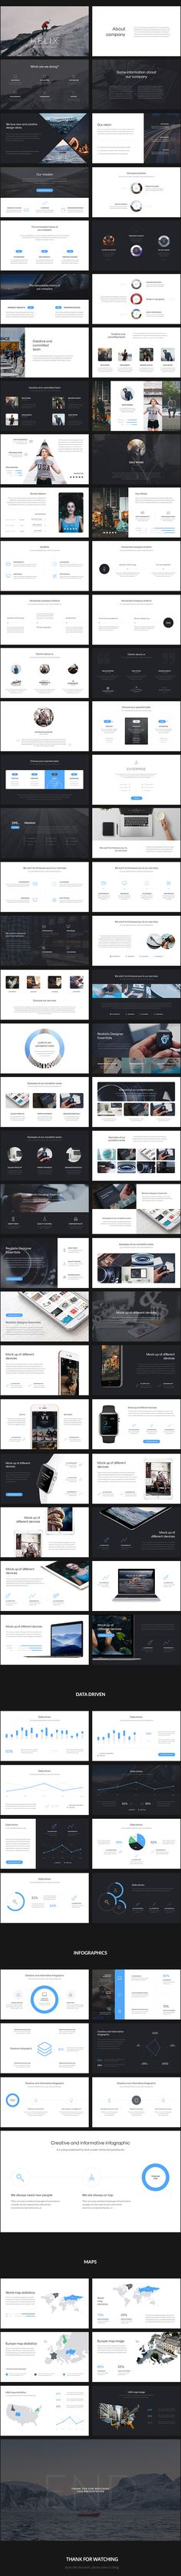 Buy Helix PowerPoint Presentation by Entersgee on GraphicRiver. Our presentation will provide a level of decision-making by higher than that of counterparts, and to prepare f. Keynote Design, Design Brochure, Ppt Design, Slide Design, Deck Design, Layout Design, Company Brochure, Keynote Presentation, Design Presentation